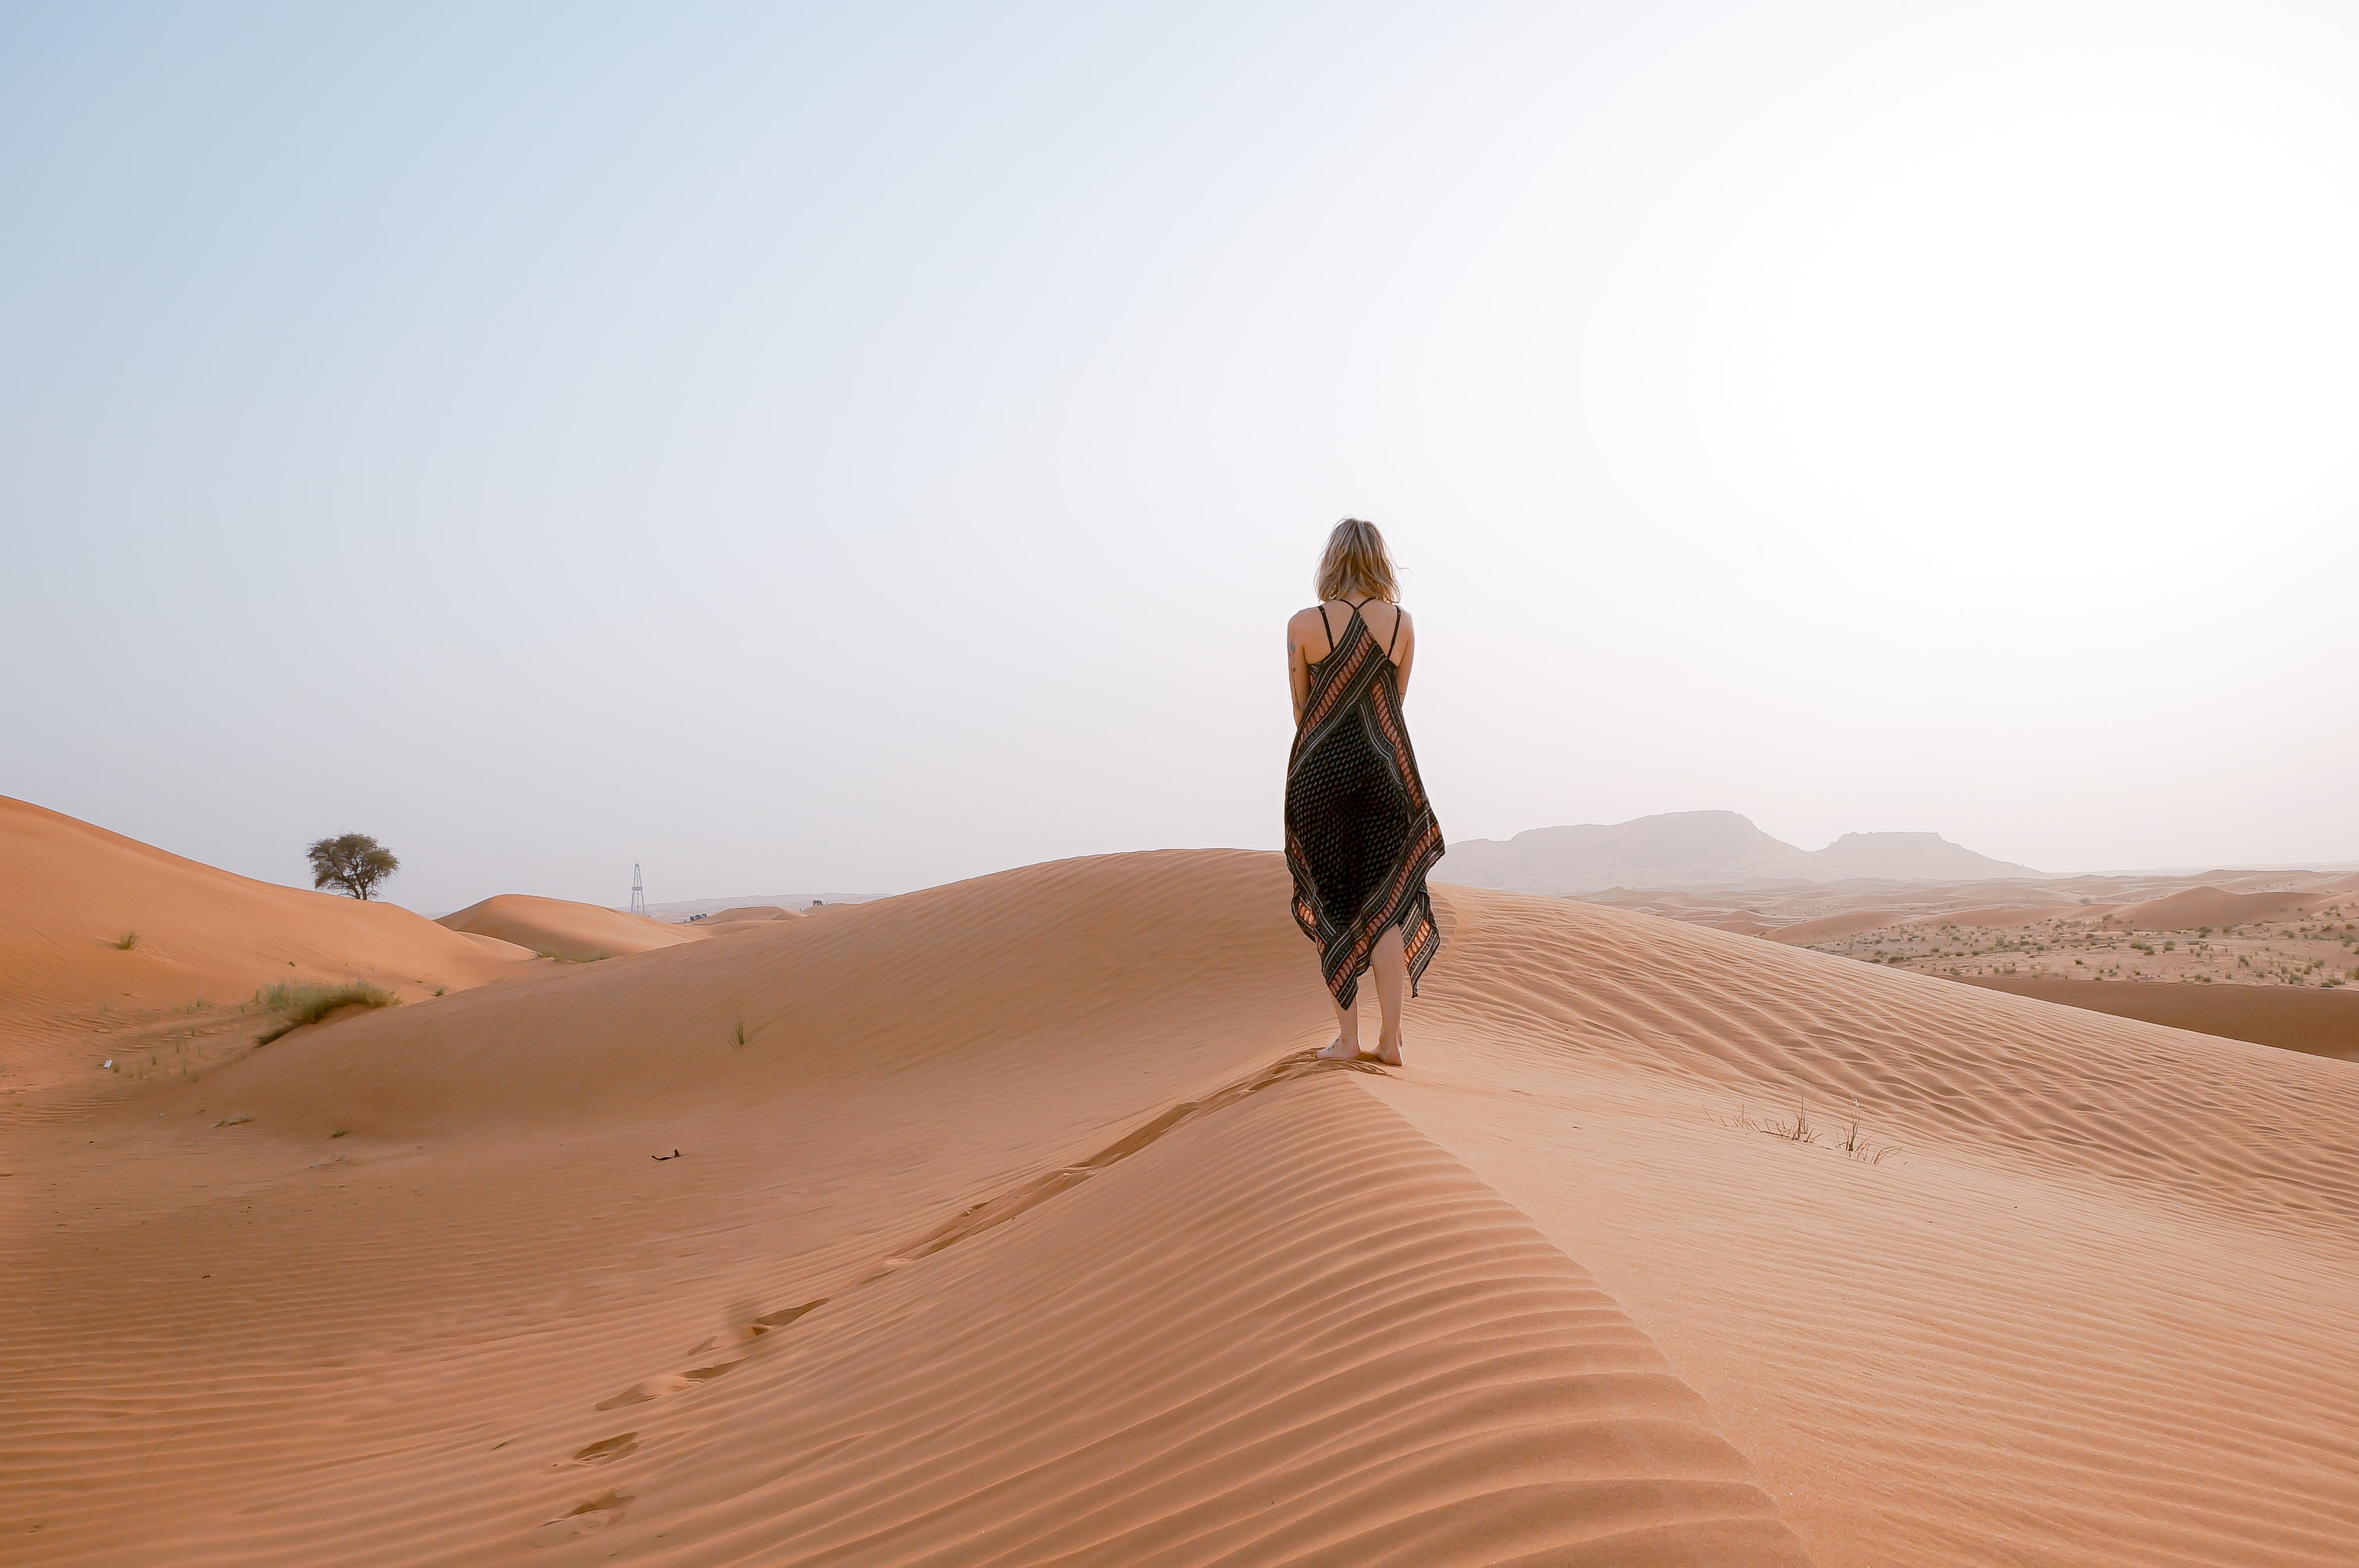 Fashionable woman walks through the dry sandy deserts of Safari Dubai